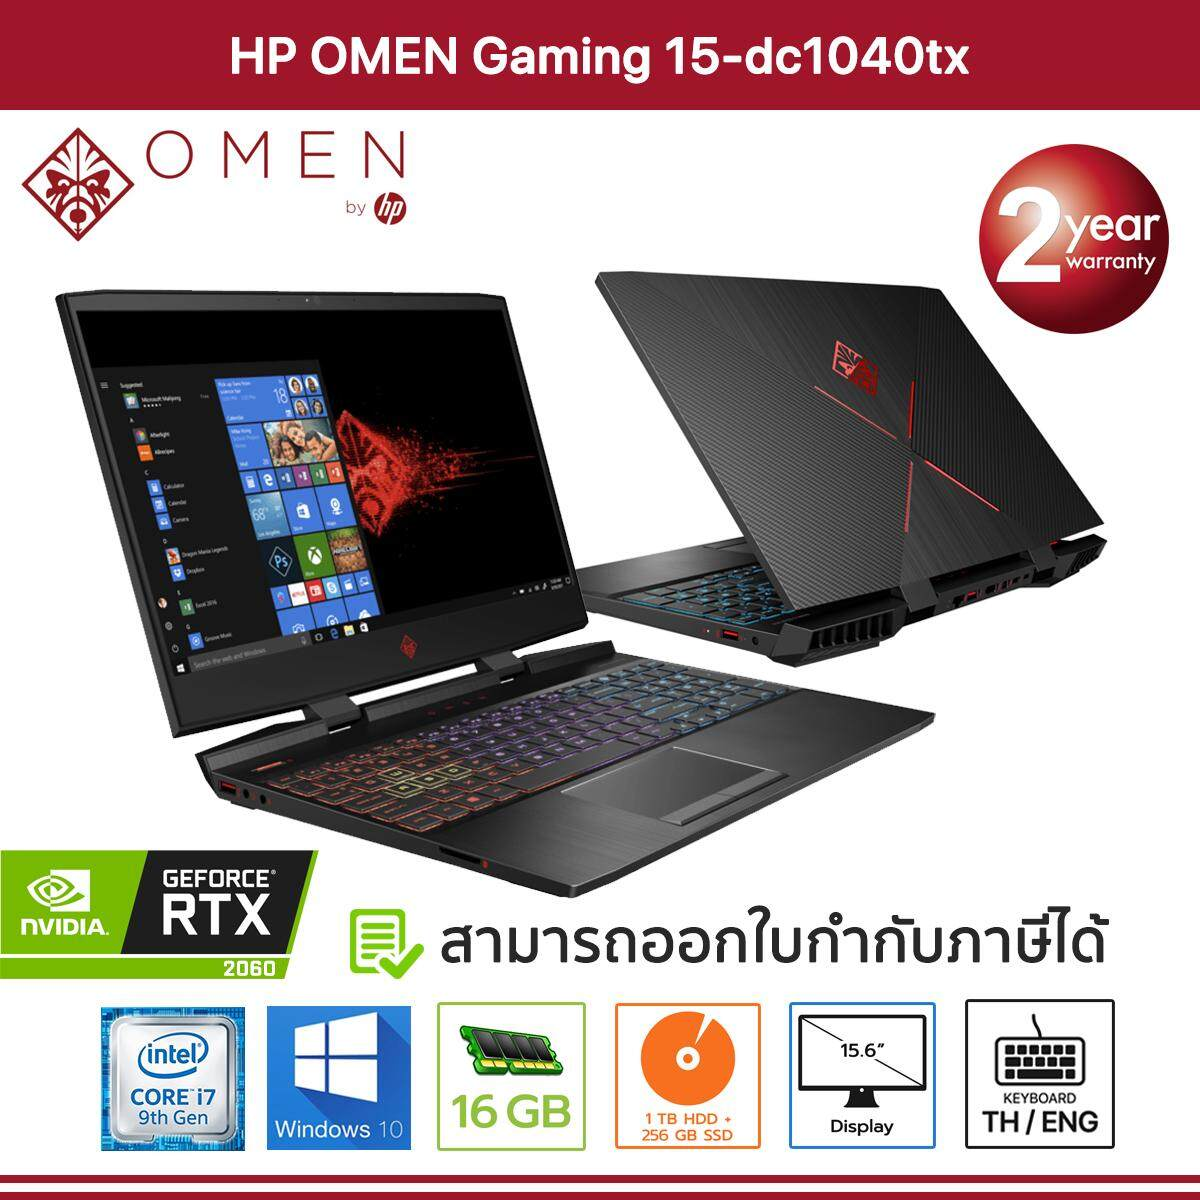 ยี่ห้อนี้ดีไหม  สงขลา HP OMEN Gaming 15-dc1040tx i7-9750H/16GB/1TB+256GB SSD/RTX2060 6GB/15.6/Win10 (Shadow Black)